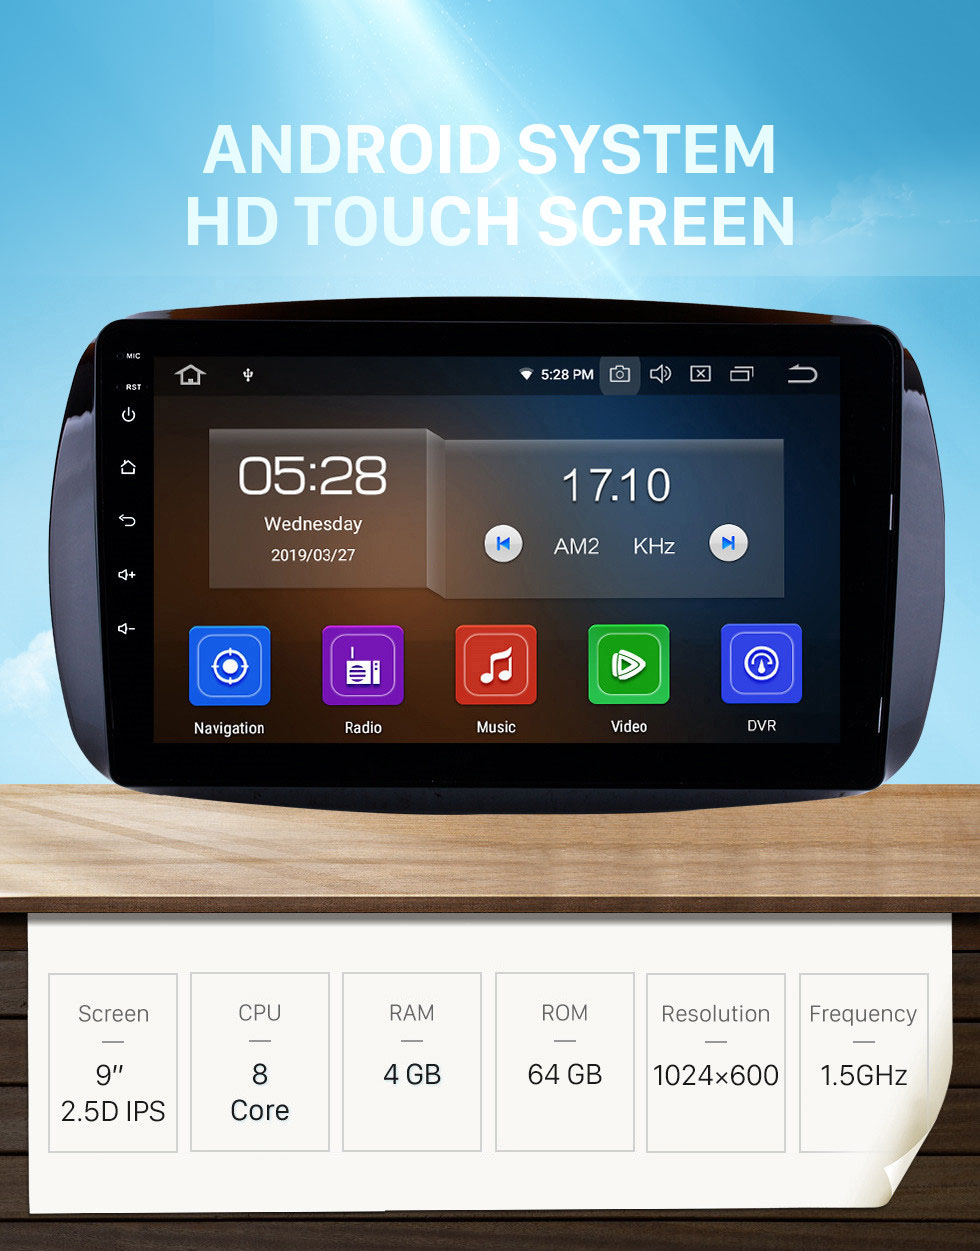 Seicane 9 Inch Android 10.0 HD 1024*600 Touchscreen Radio For 2015 2016 Mercedes Benz SMART Car Stereo GPS Navigation System Bluetooth Support Mirror Link OBD2 AUX 3G WiFi DVR 1080P Video Steering Wheel Control